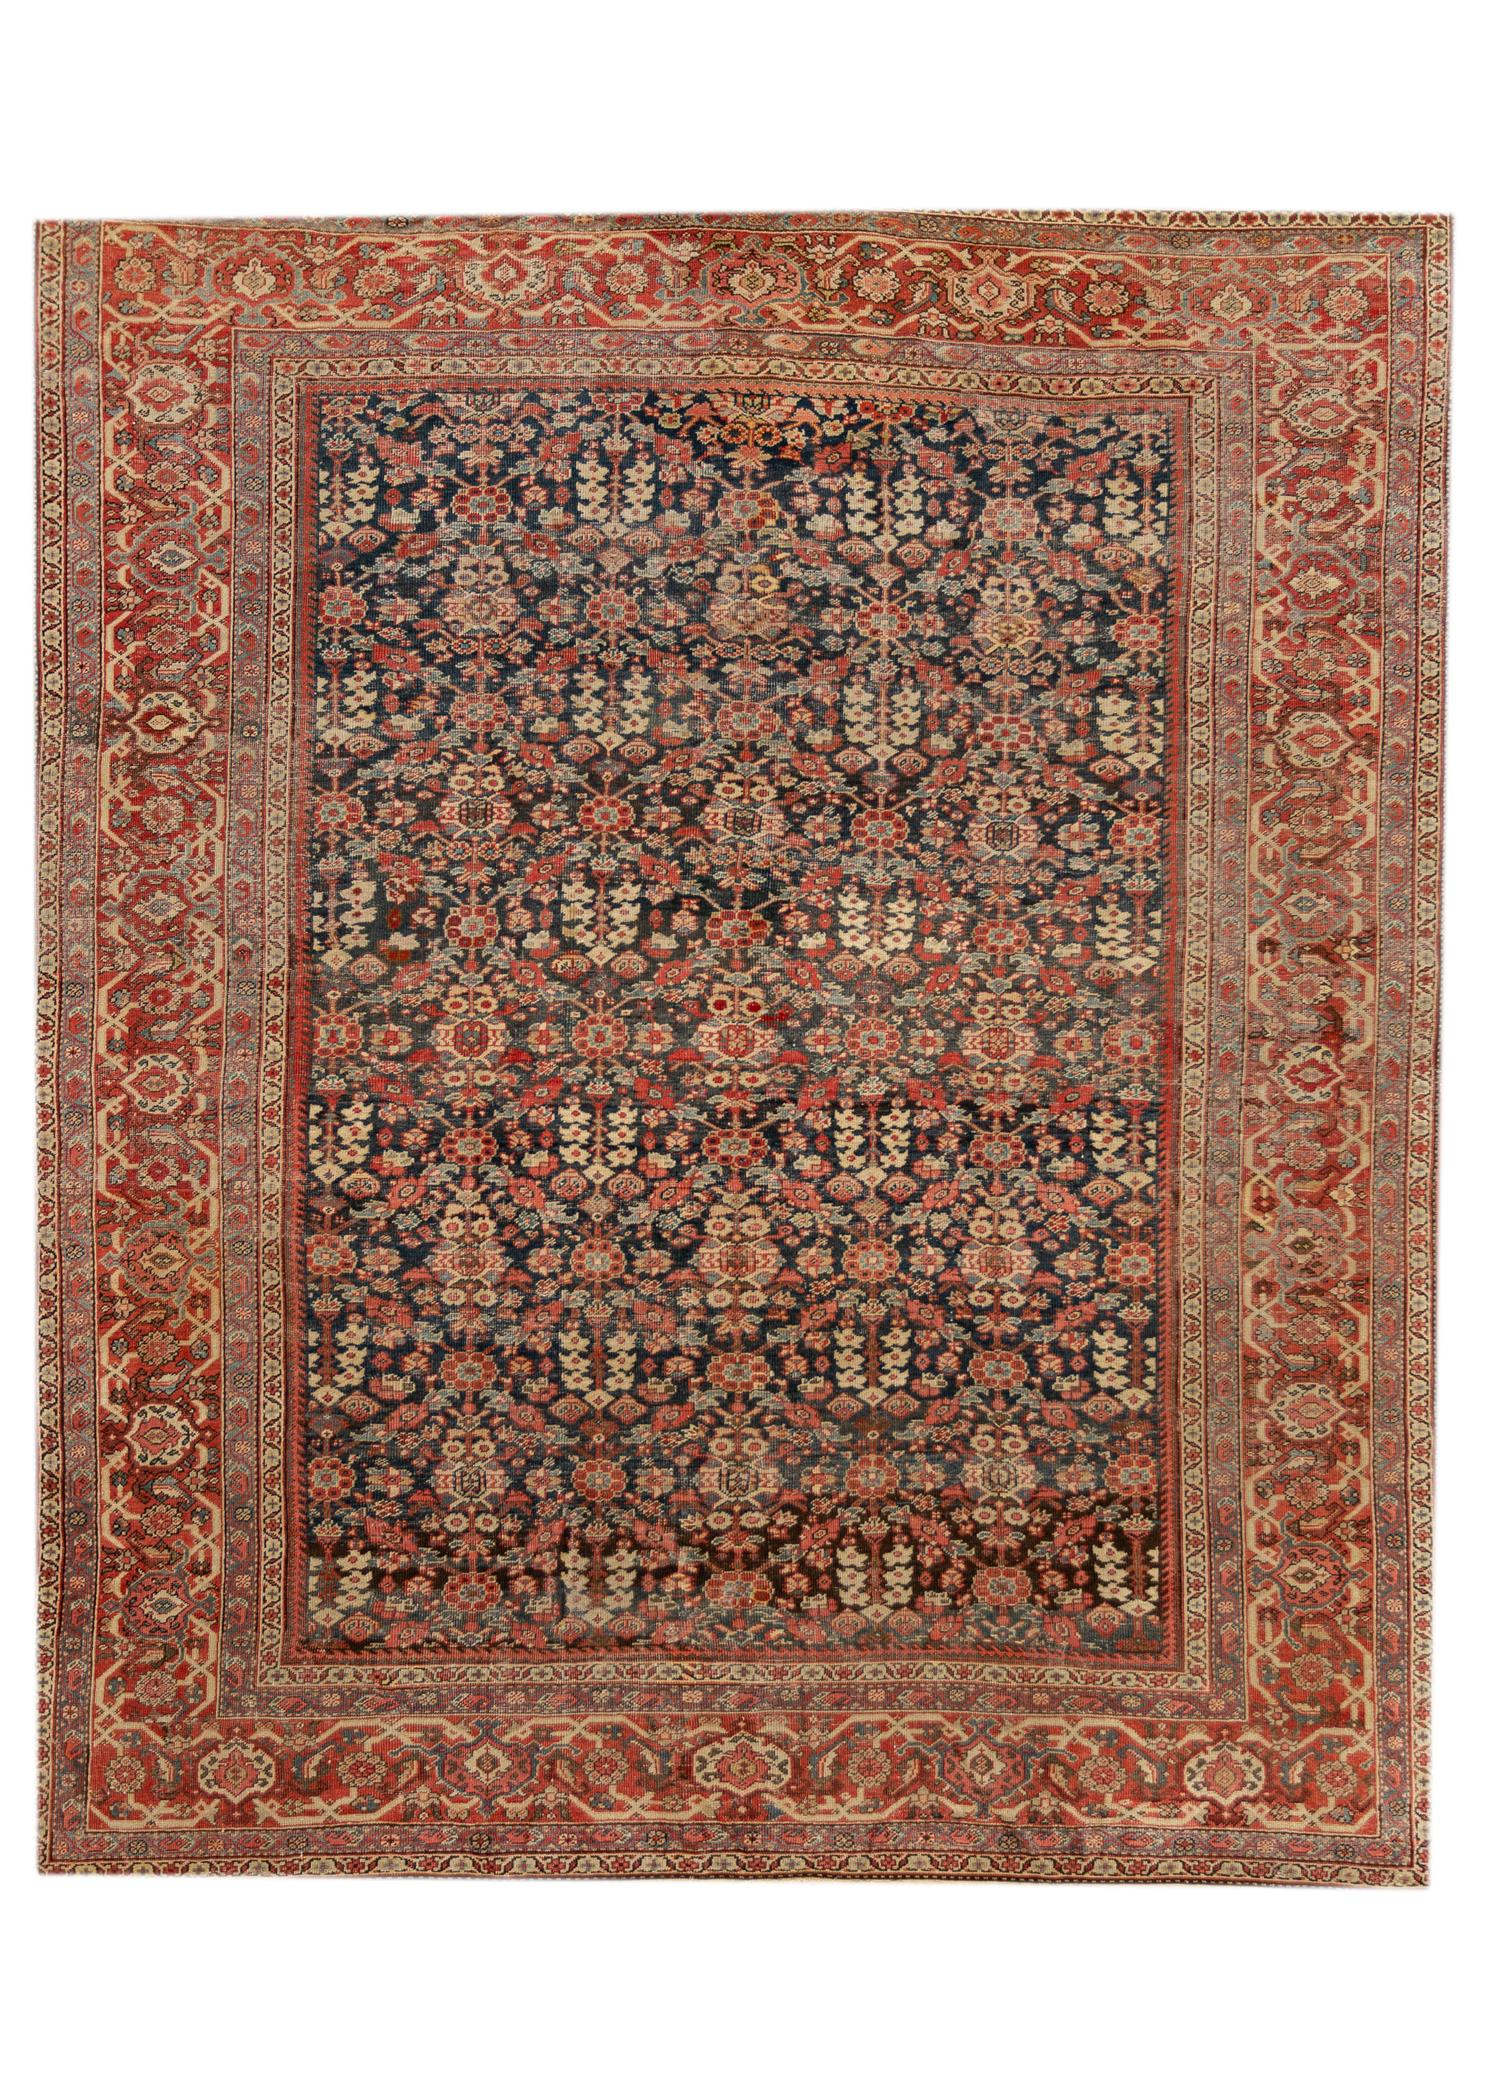 Antique Persian Mahal Rug, 9X10